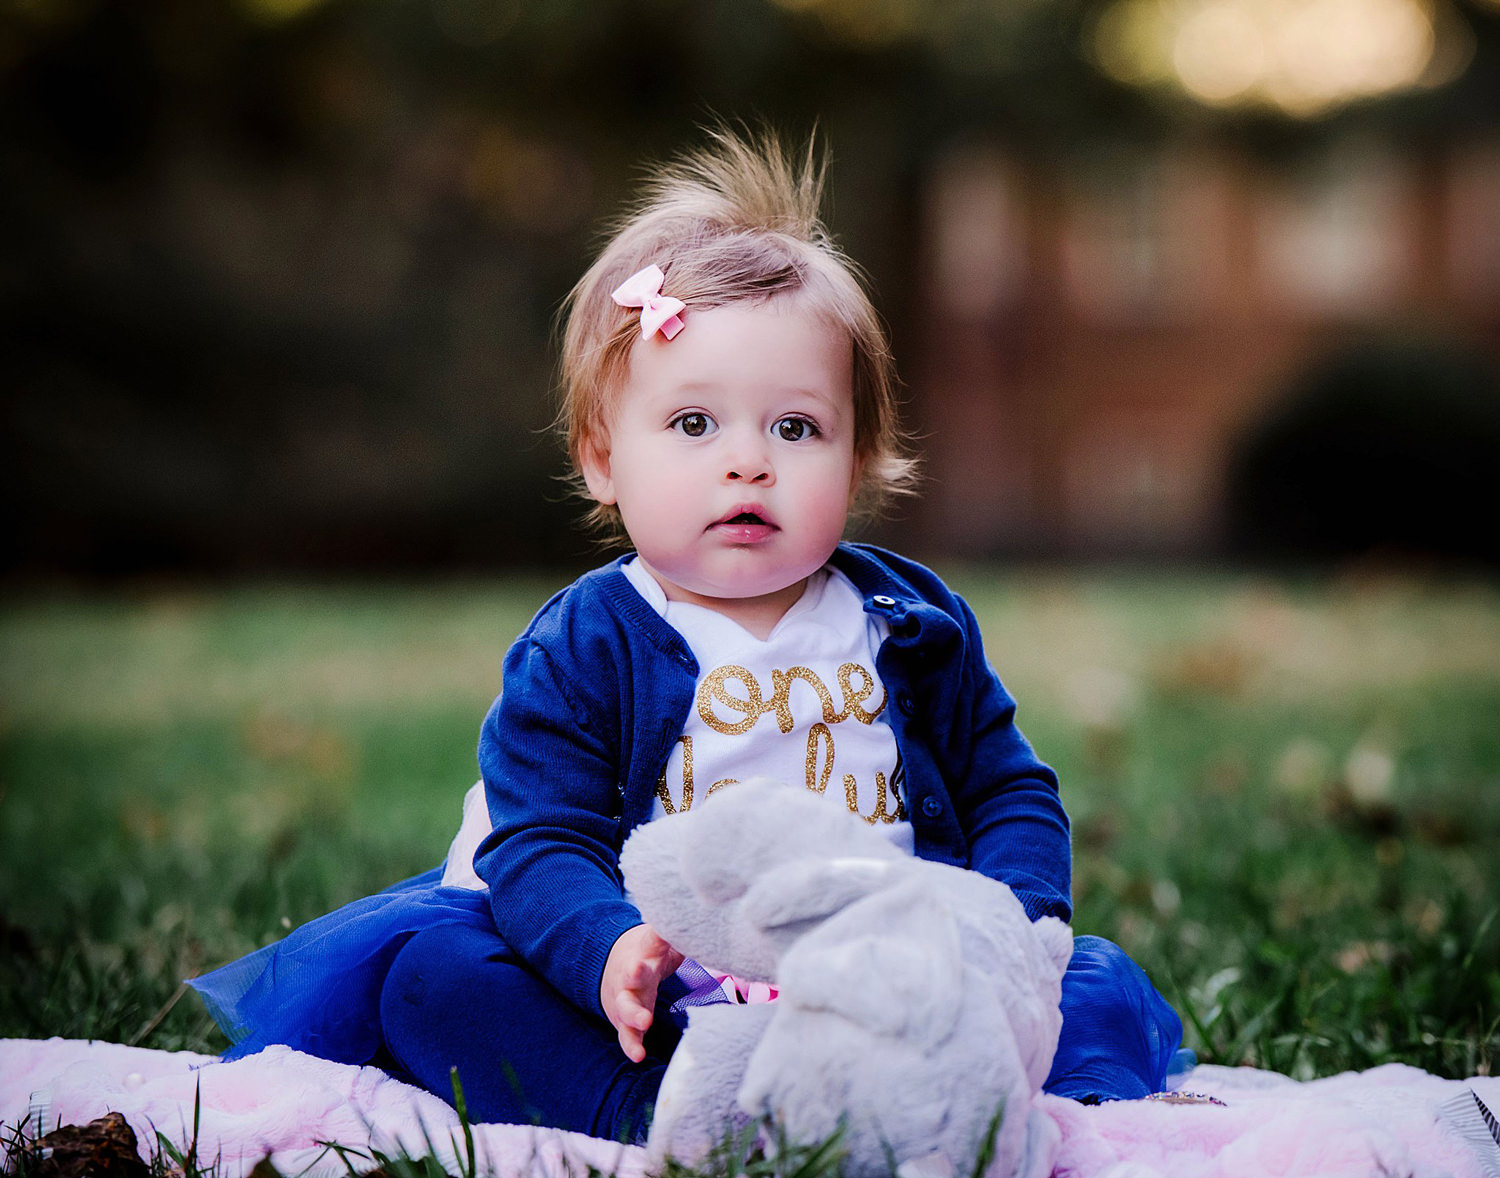 first-year-photos-baby-girl-virginia-beach-regent-university-melissa-bliss-photography.jpg